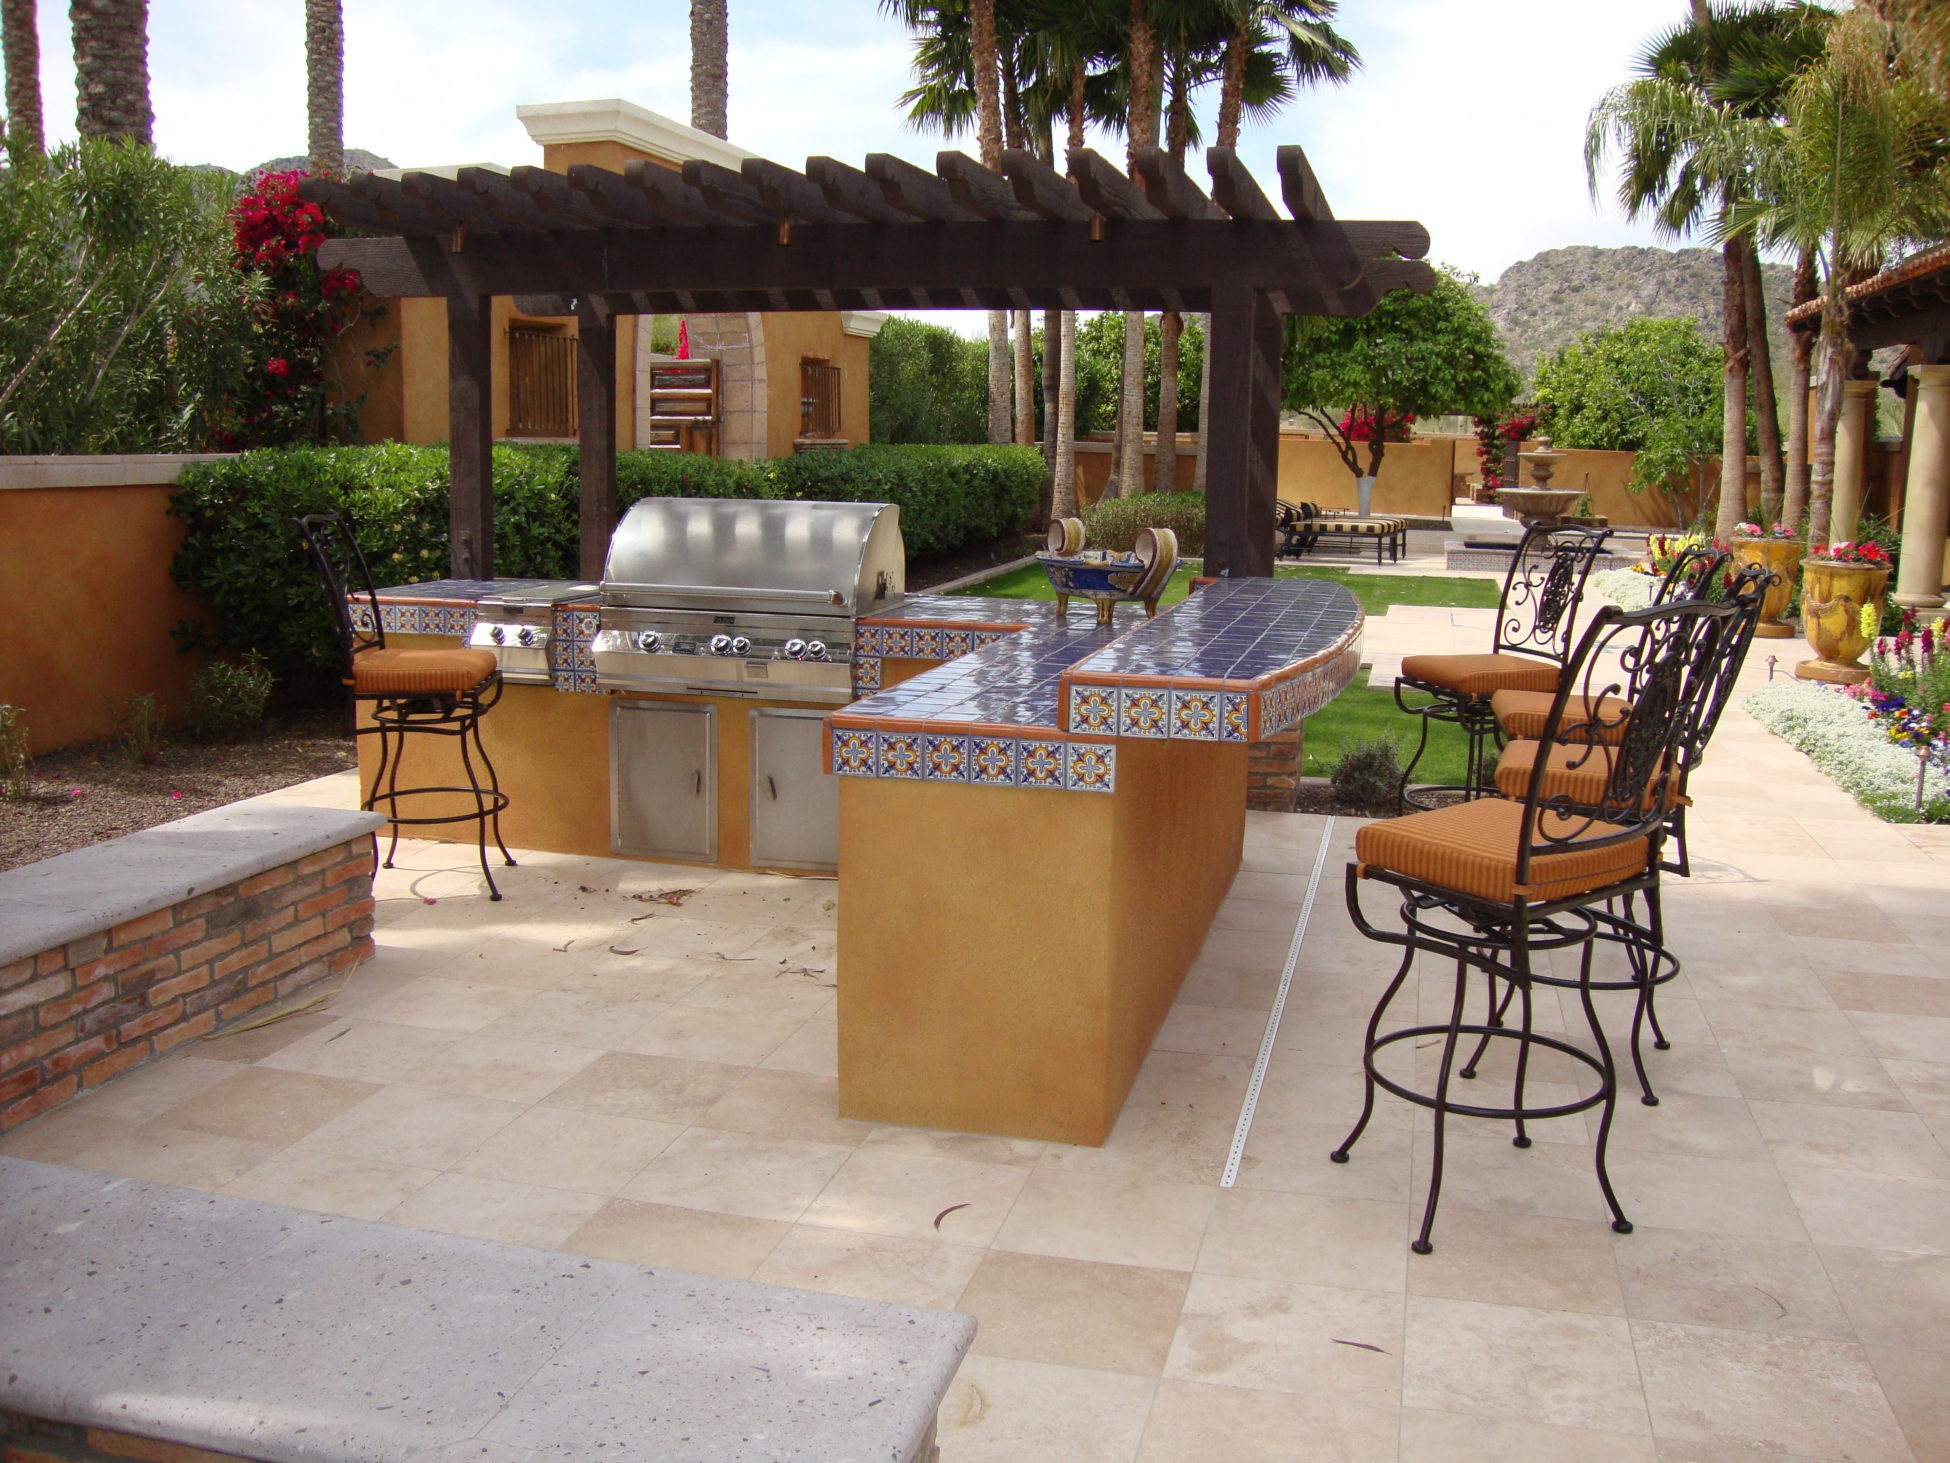 Arizona outdoor kitchens are great addition to backyard fun for Outdoor kitchen ideas small yard